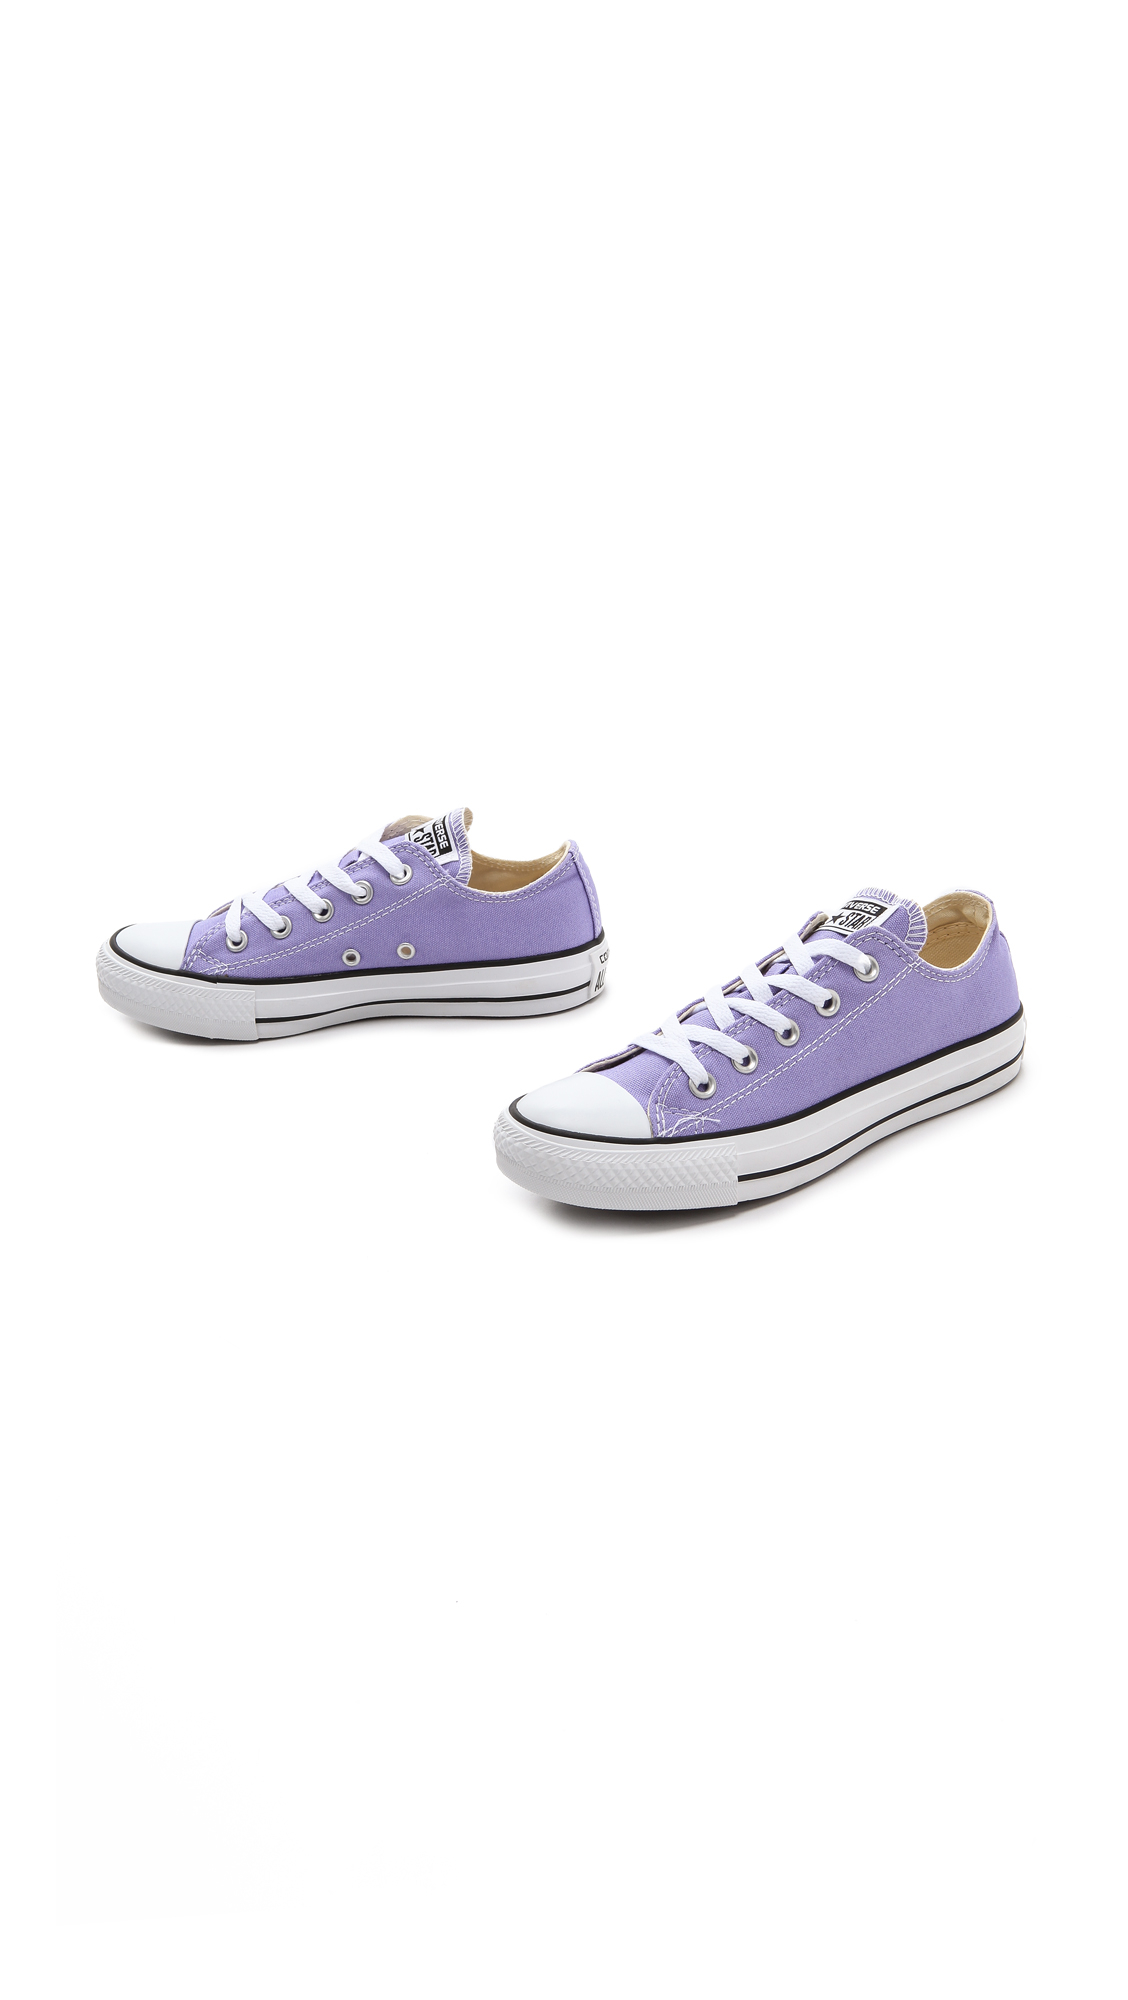 af63d796519a2 Lyst - Converse Low Top Ox Sneakers Lavender in Purple